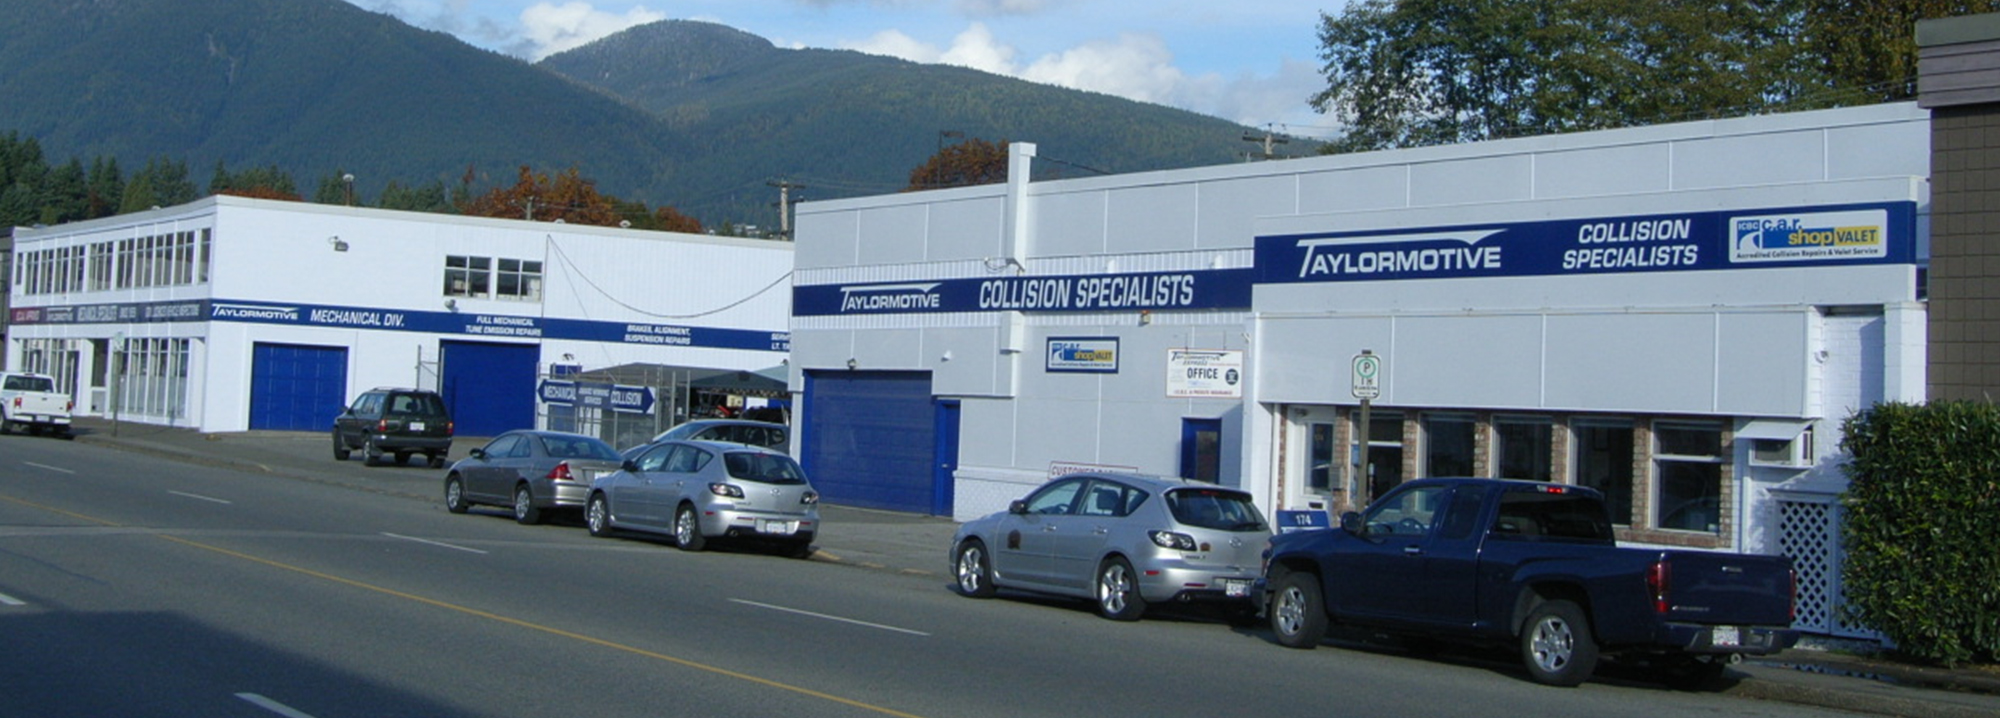 Collision repair shop vehicle suspension north vancouver taylormotive is the first and only i car gold class certified professionaly trained i car platinum collision repair shop in north vancouver 1betcityfo Gallery